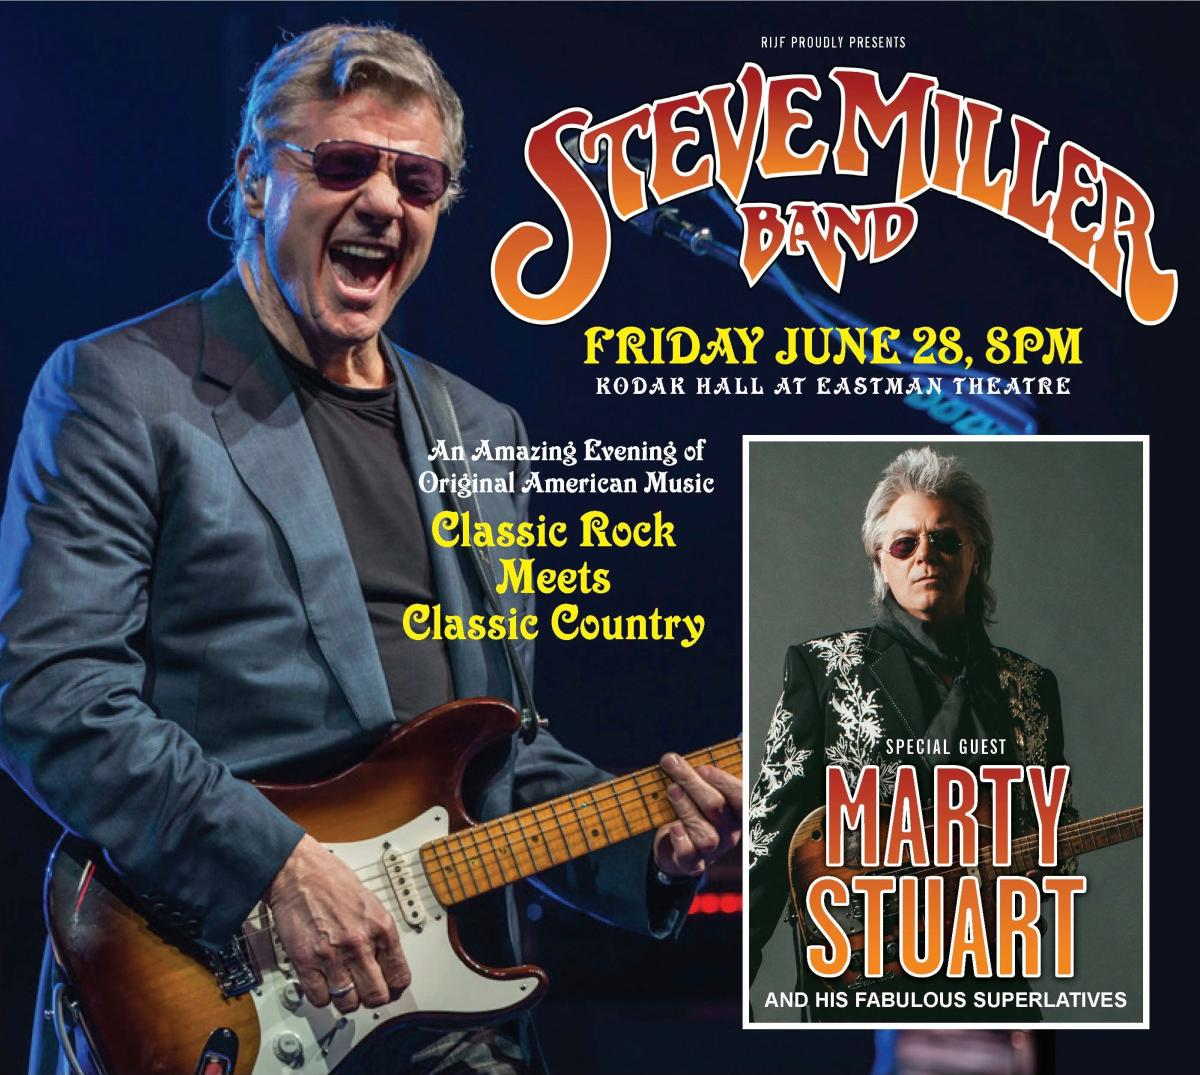 Steve Miller Band Tour 2020.Rochester International Jazz Festival June 19 27 2020